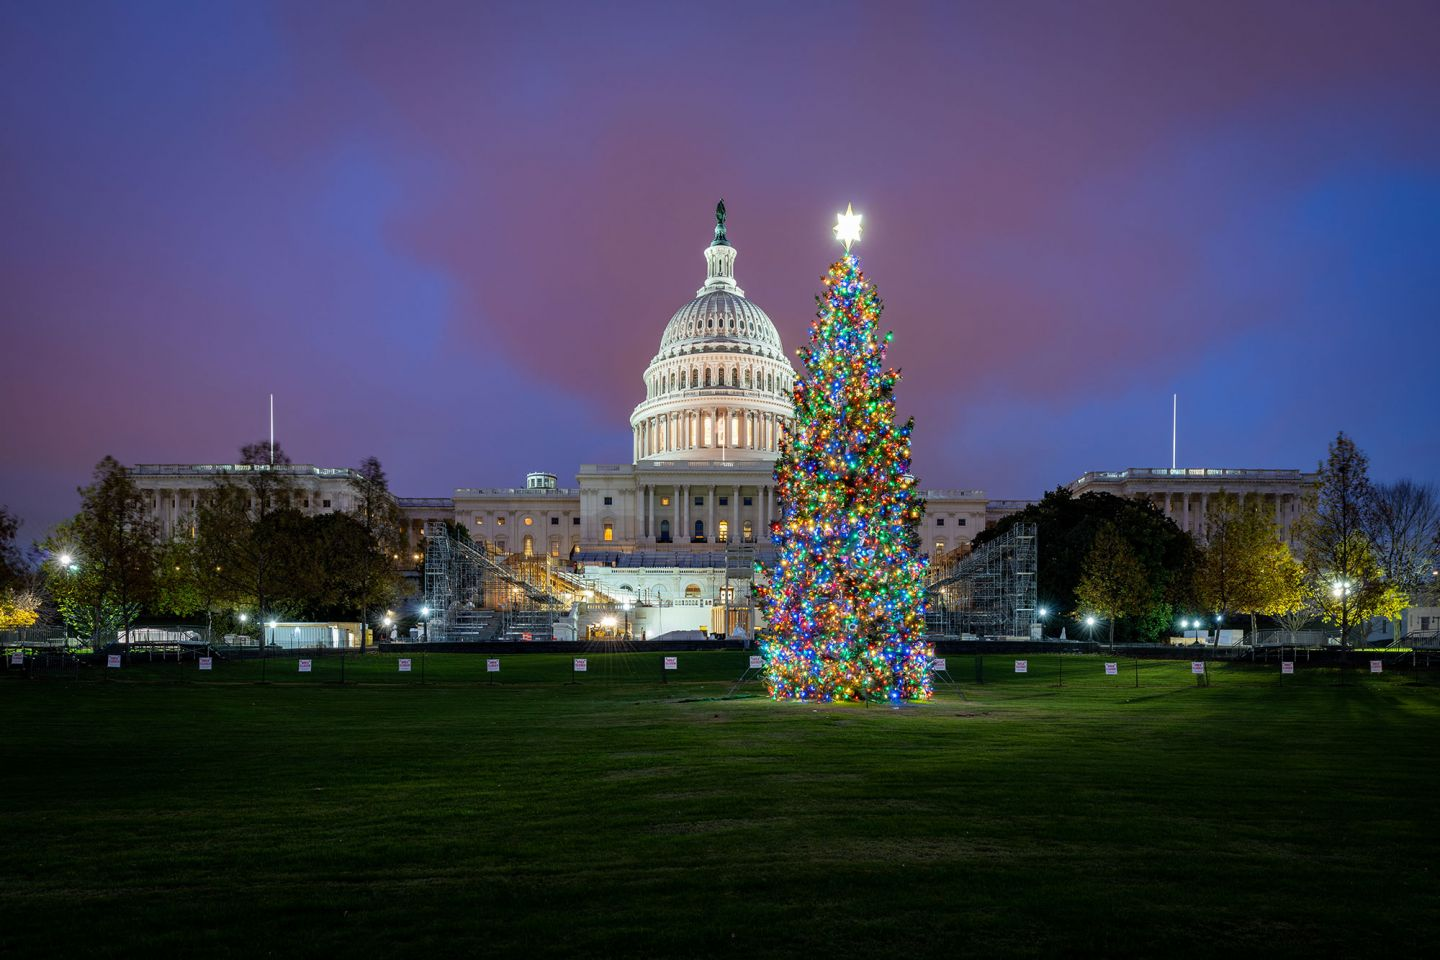 The 2020 U.S. Capitol Christmas Tree from the Grand Mesa, Uncompahgre and Gunnison (GMUG) National Forests in Colorado.